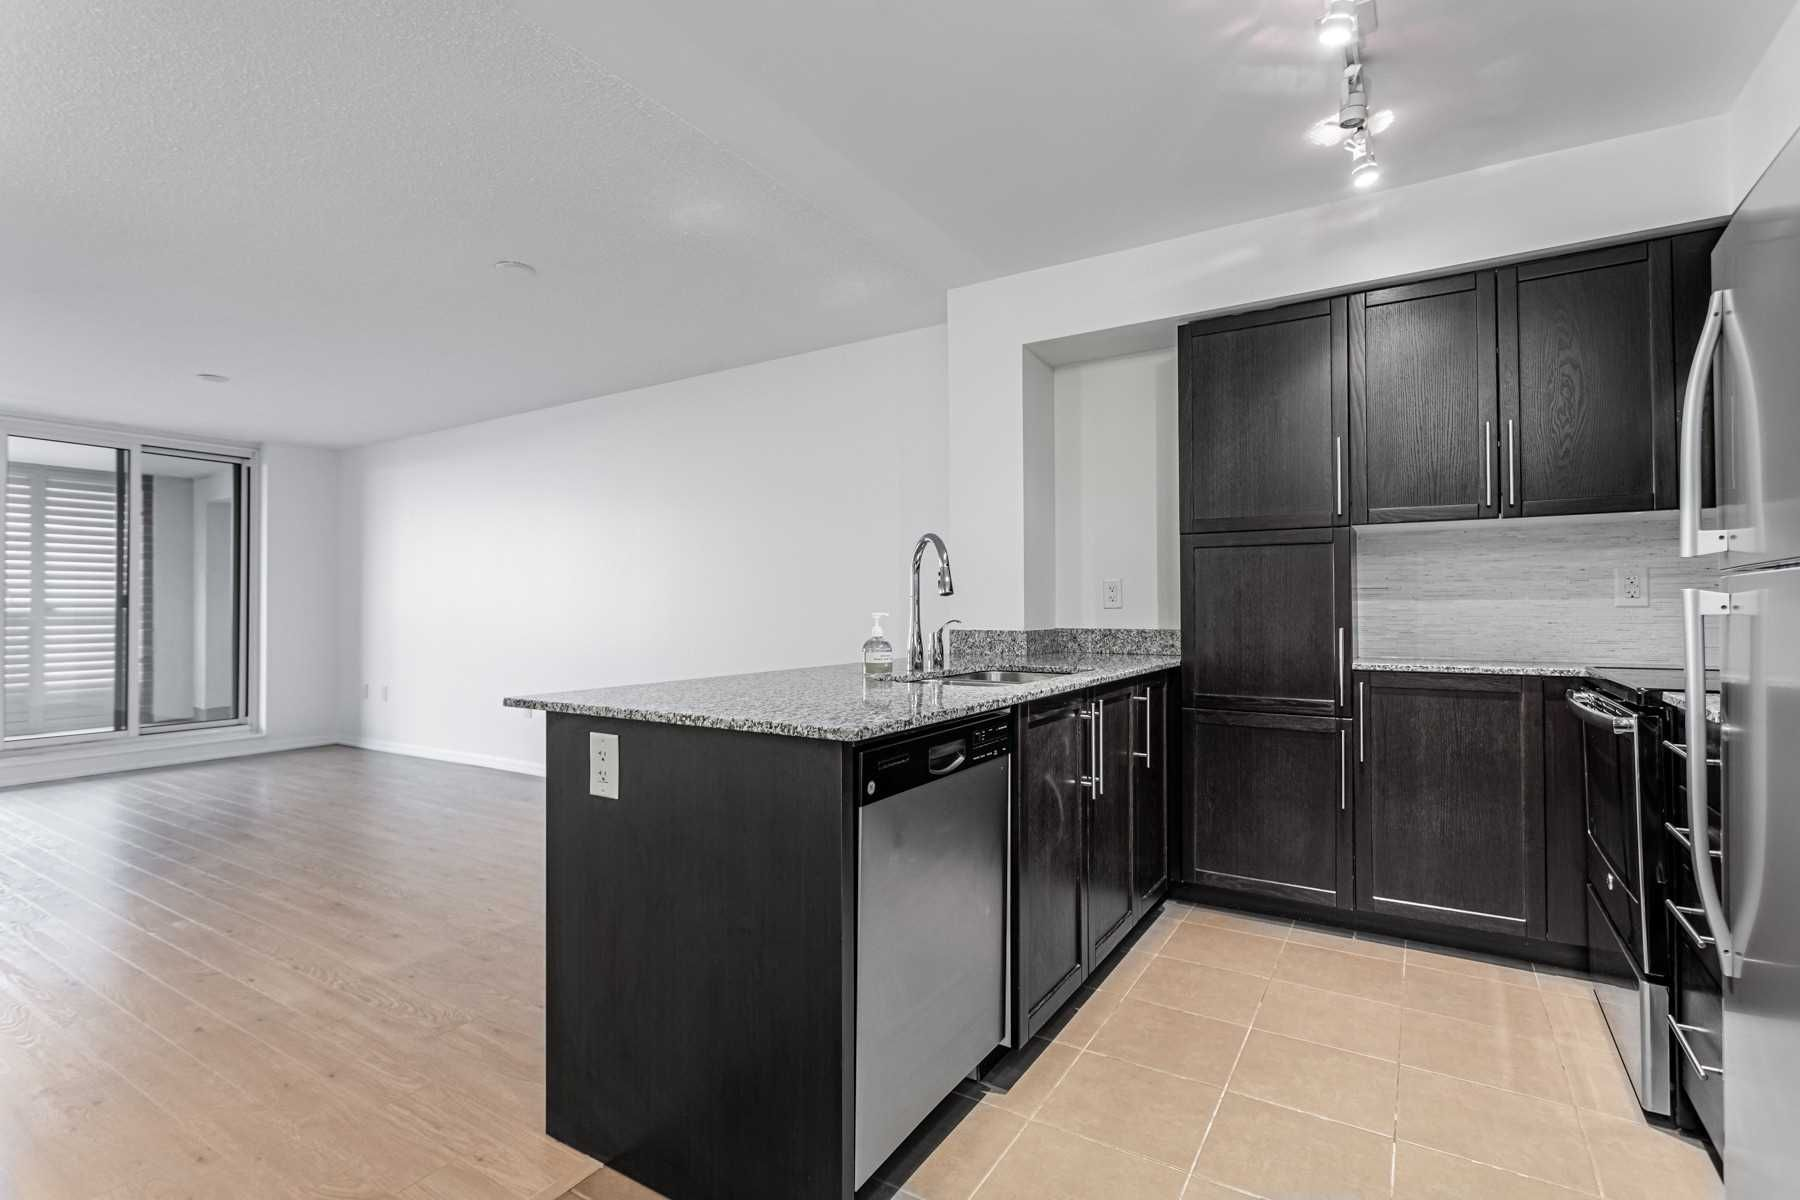 830 Lawrence Ave W, unit 339 for sale in Toronto - image #2